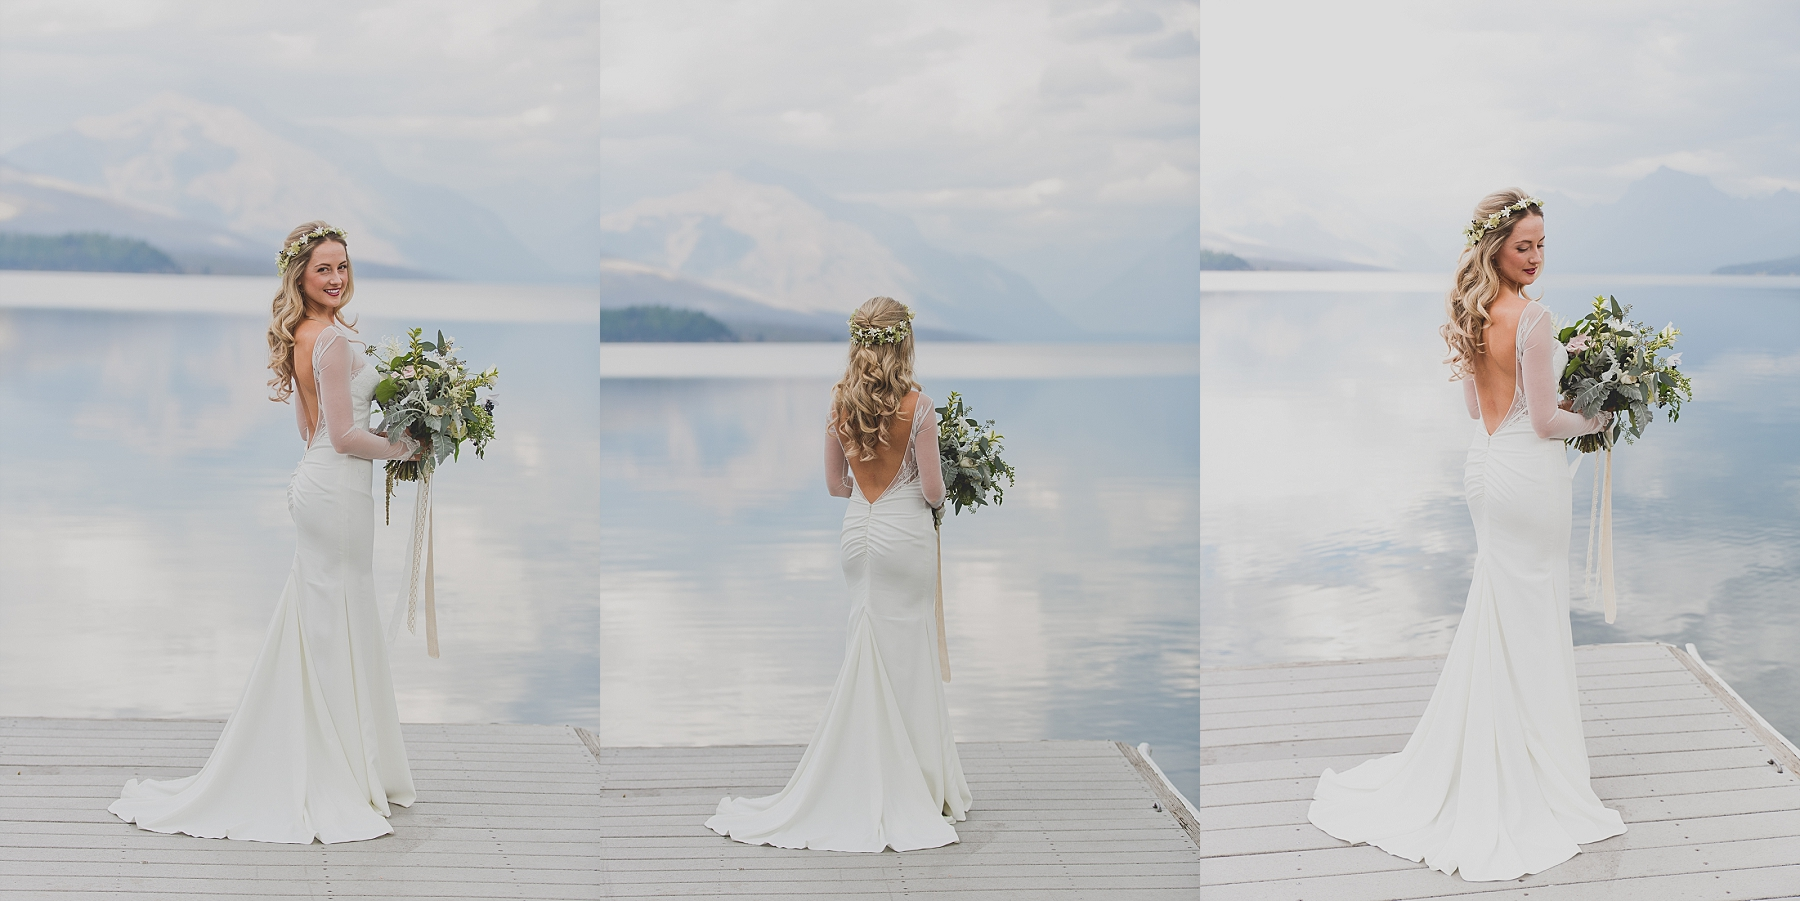 Jennifer_Mooney_Photo_glacier_park_wedding_Beargrass_florals_fall_wedding_elegant_montana_destination_velvet_bride_katie_may_dress_verona_gown_00024.jpg